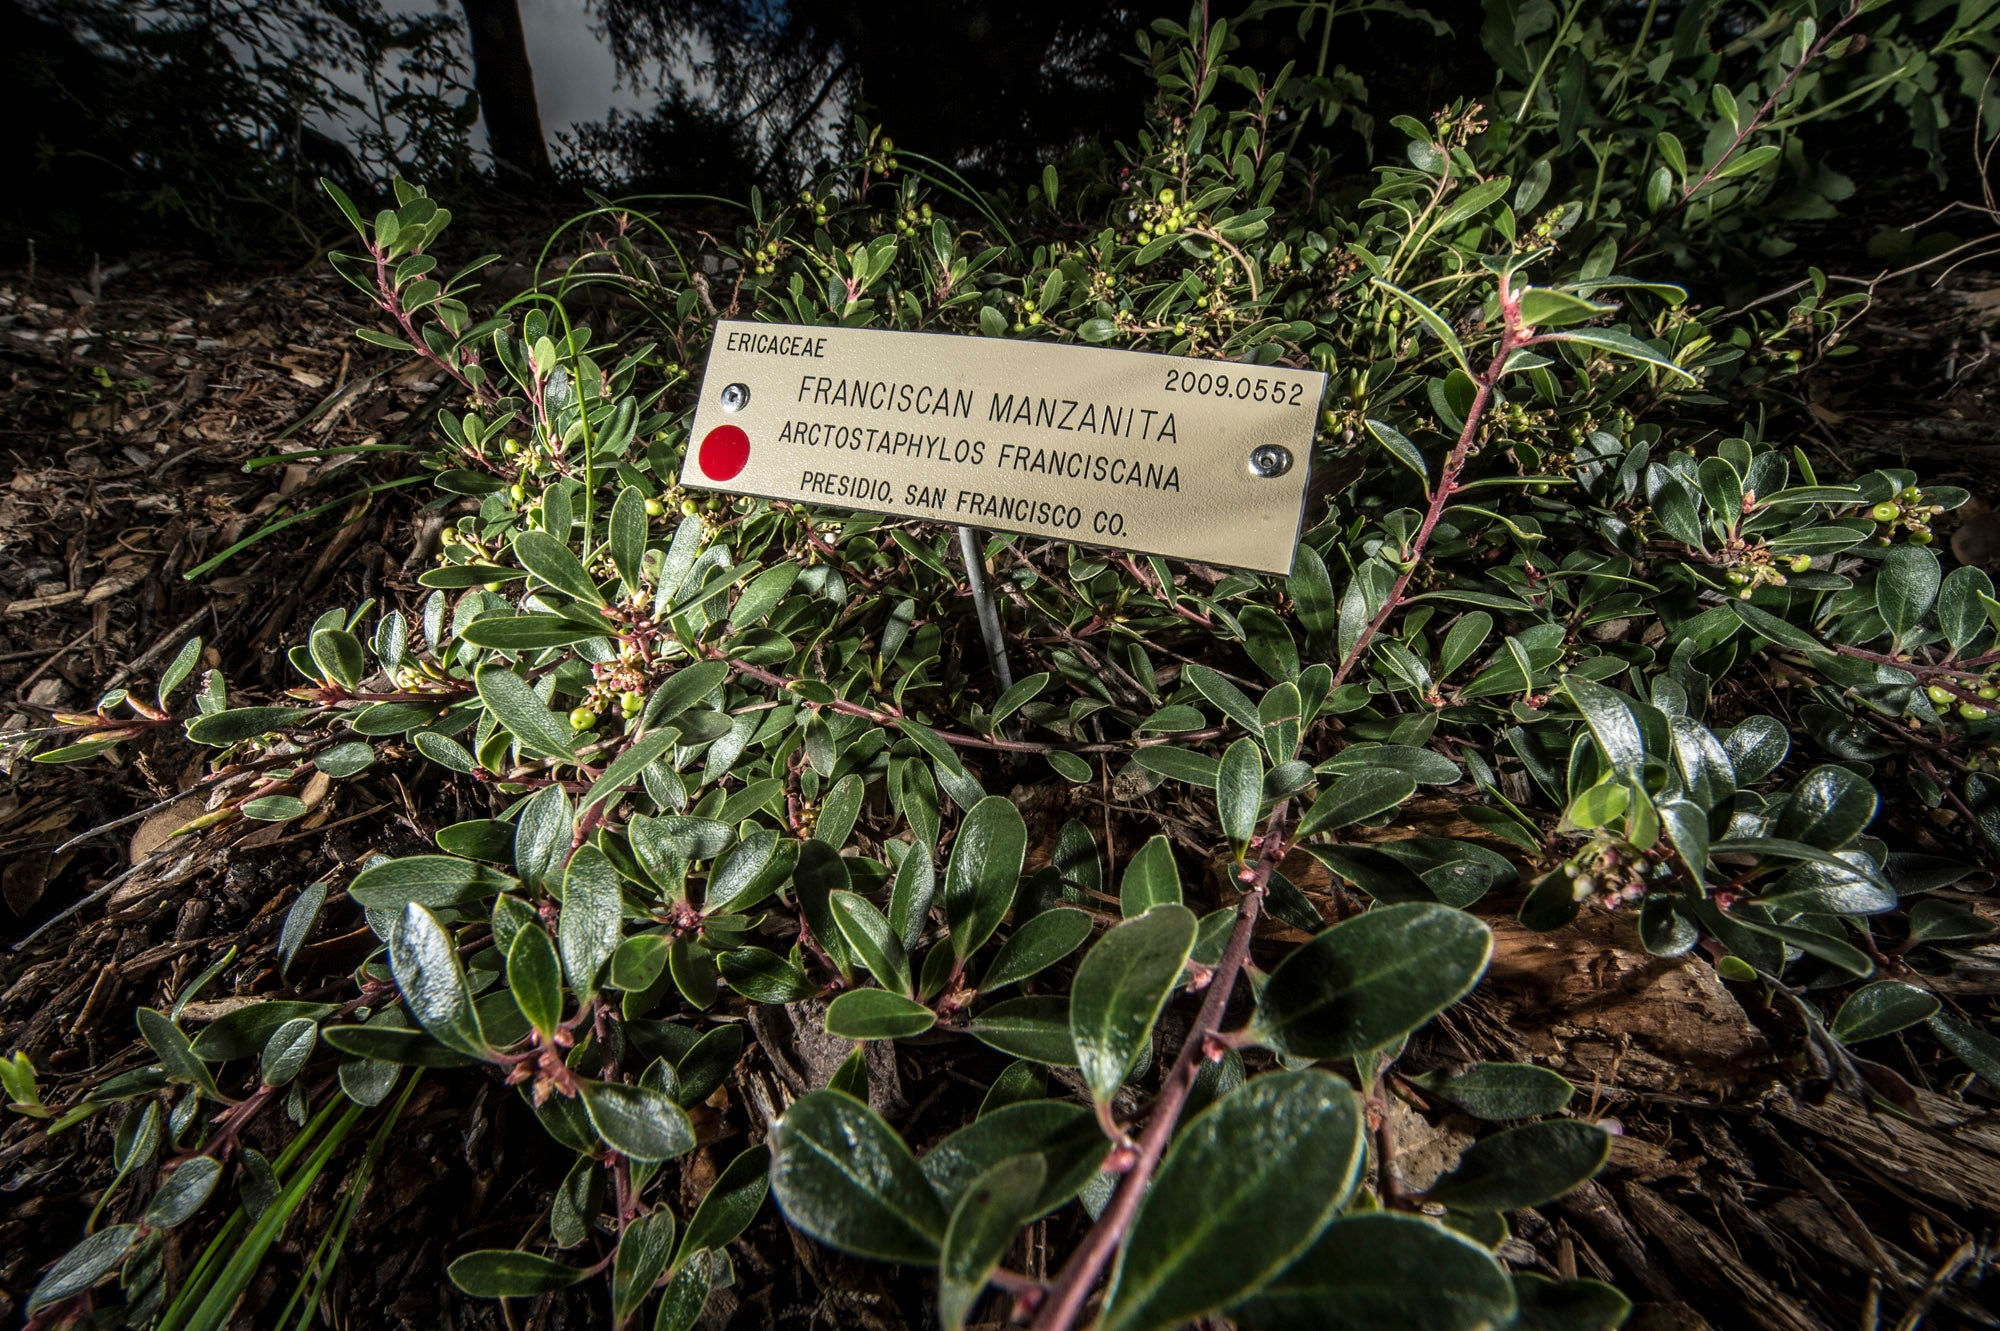 Cuttings of the Franciscan manzanita are growing at sites throughout the Bay Area, including the UC Berkeley Botanical Garden.